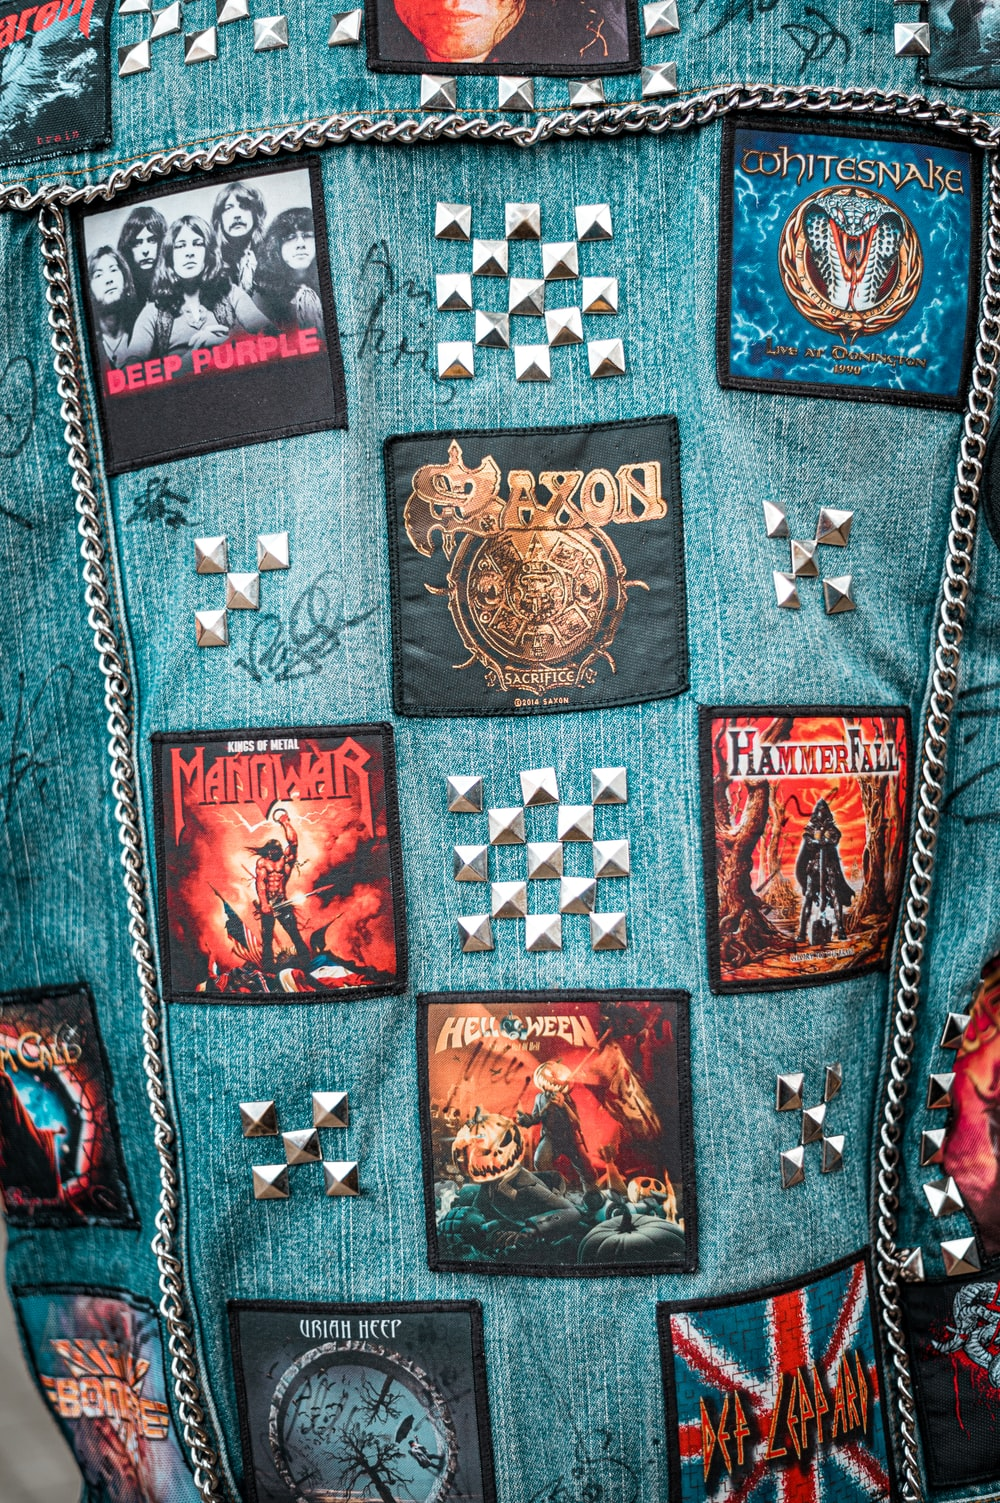 blue, red, and brown denim fabric